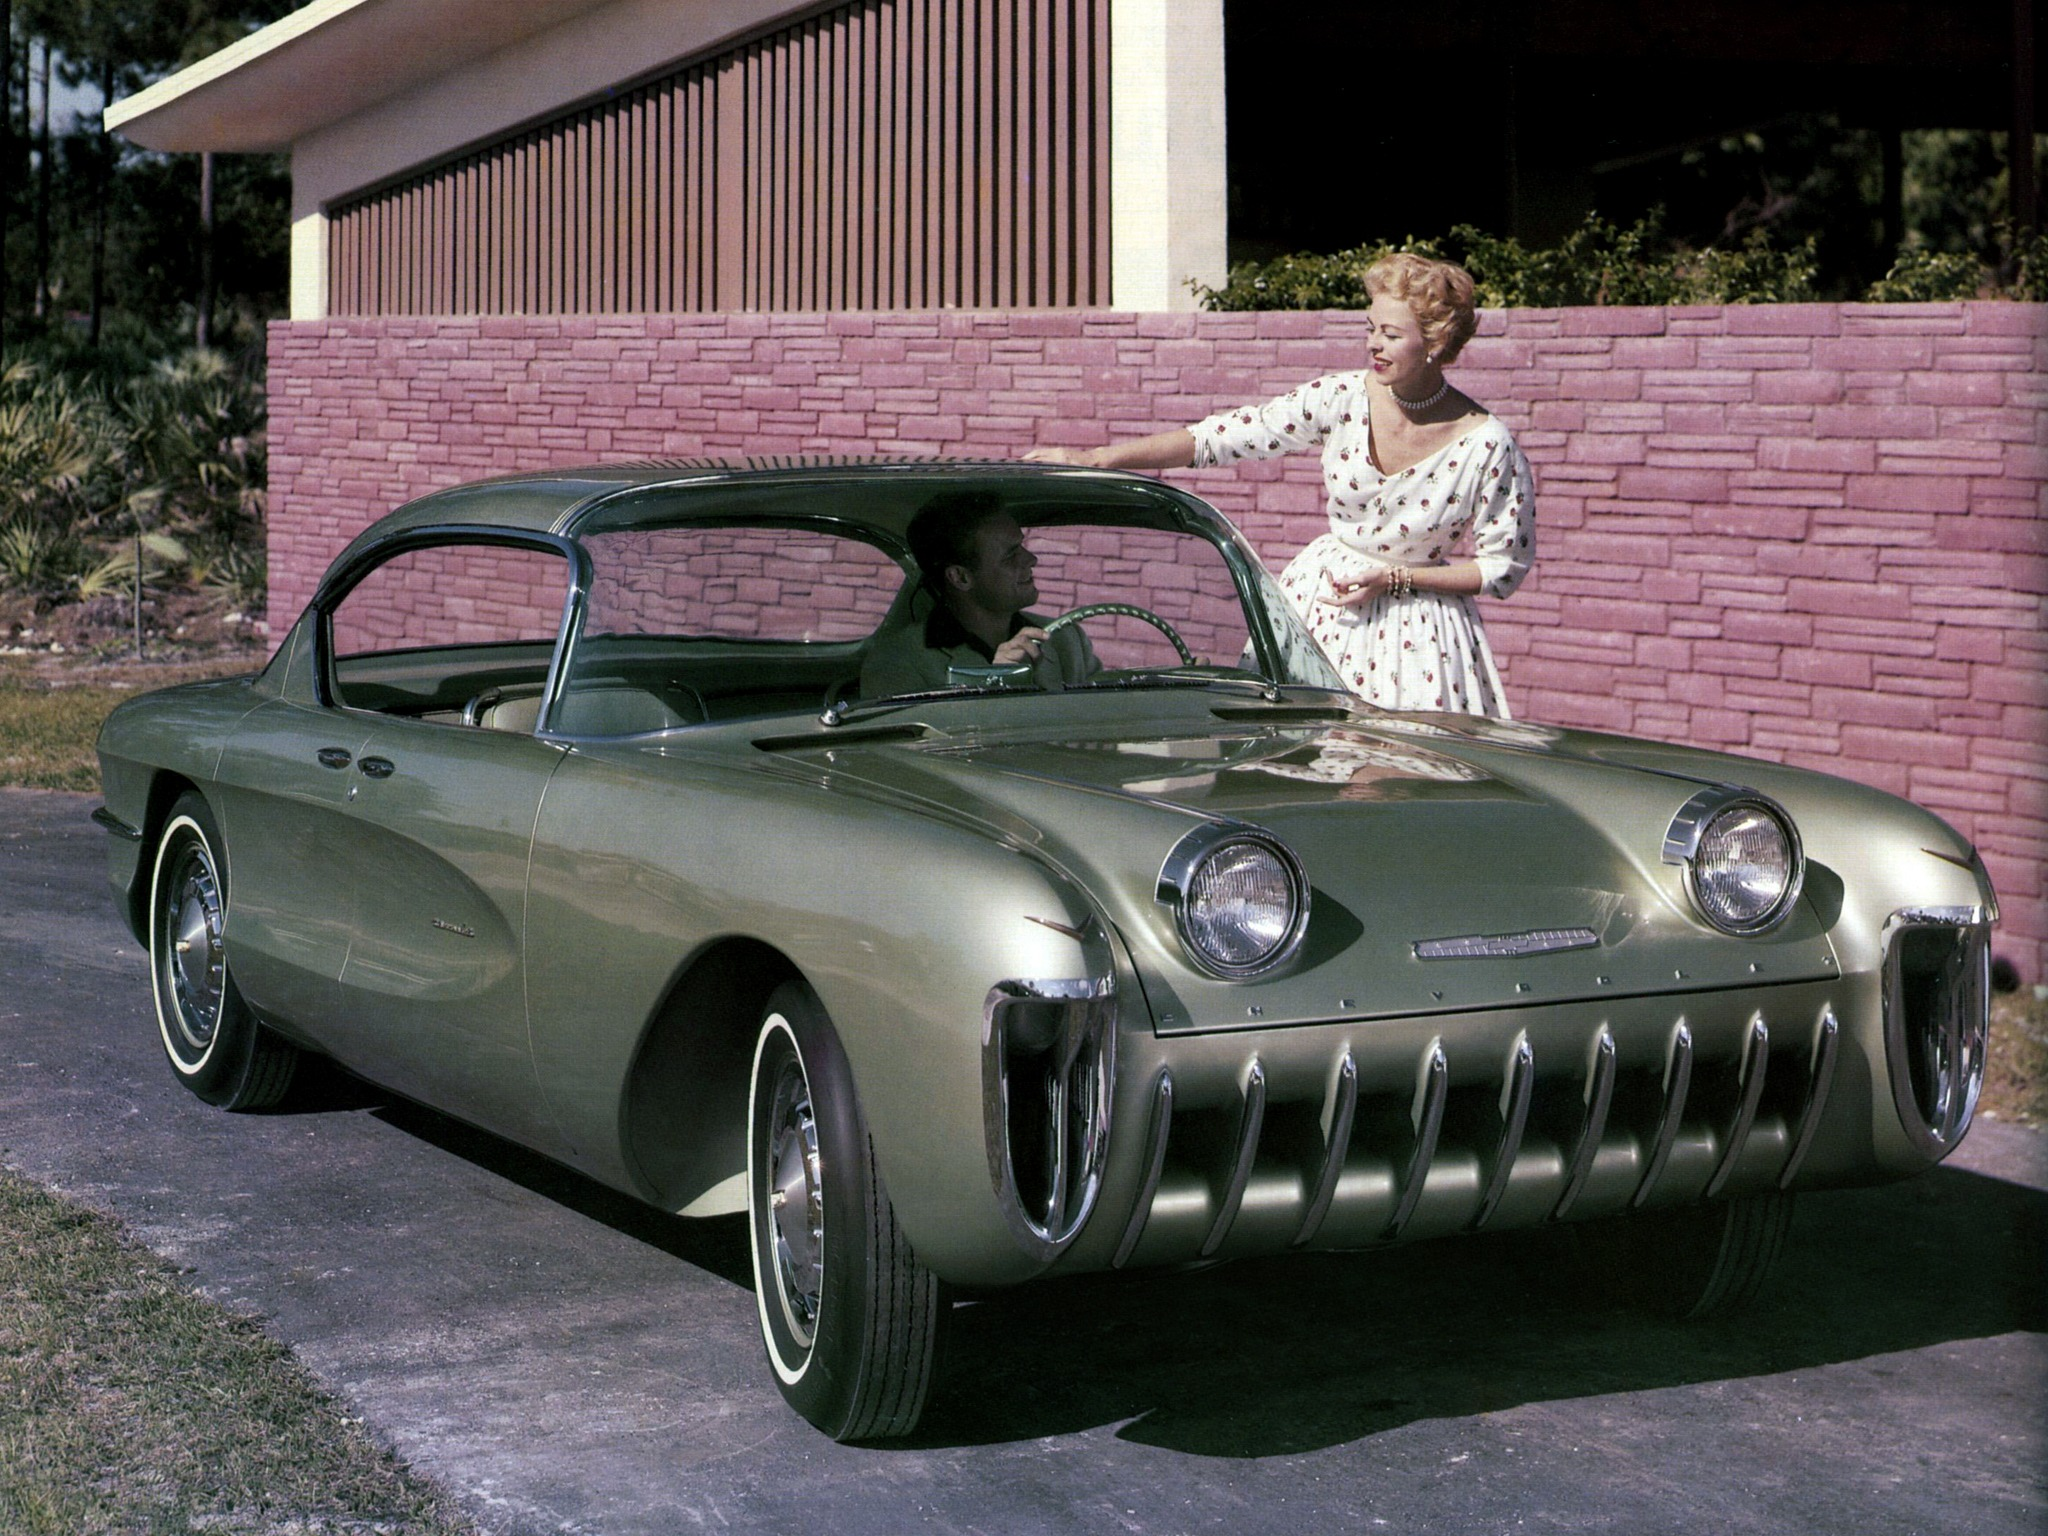 Used Autos Near Me >> Chevrolet Biscayne Concept Car (1955) - Old Concept Cars